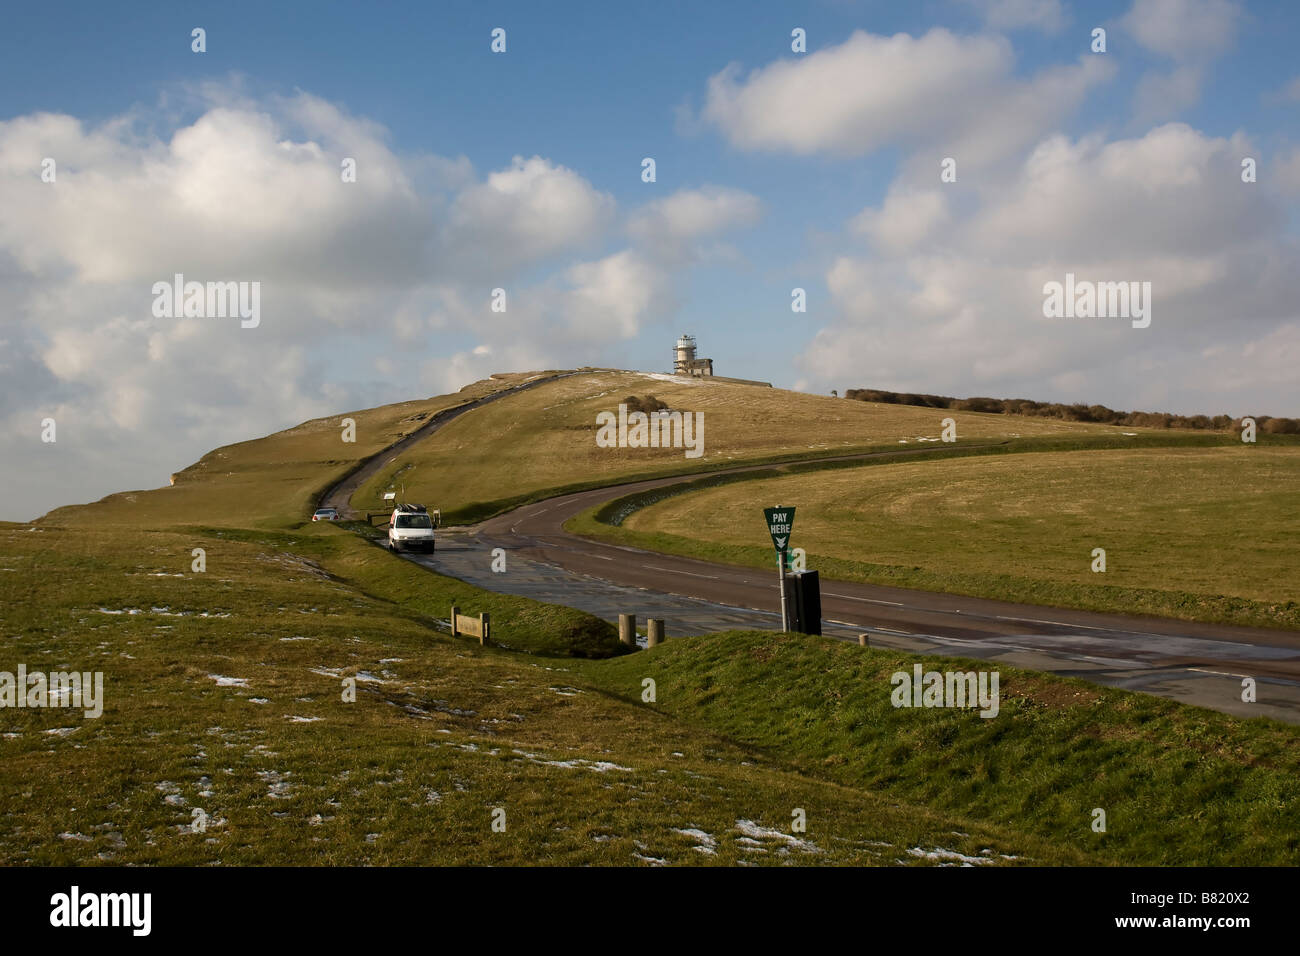 South Downs near Beachy Head, East Sussex England GB UK - Stock Image